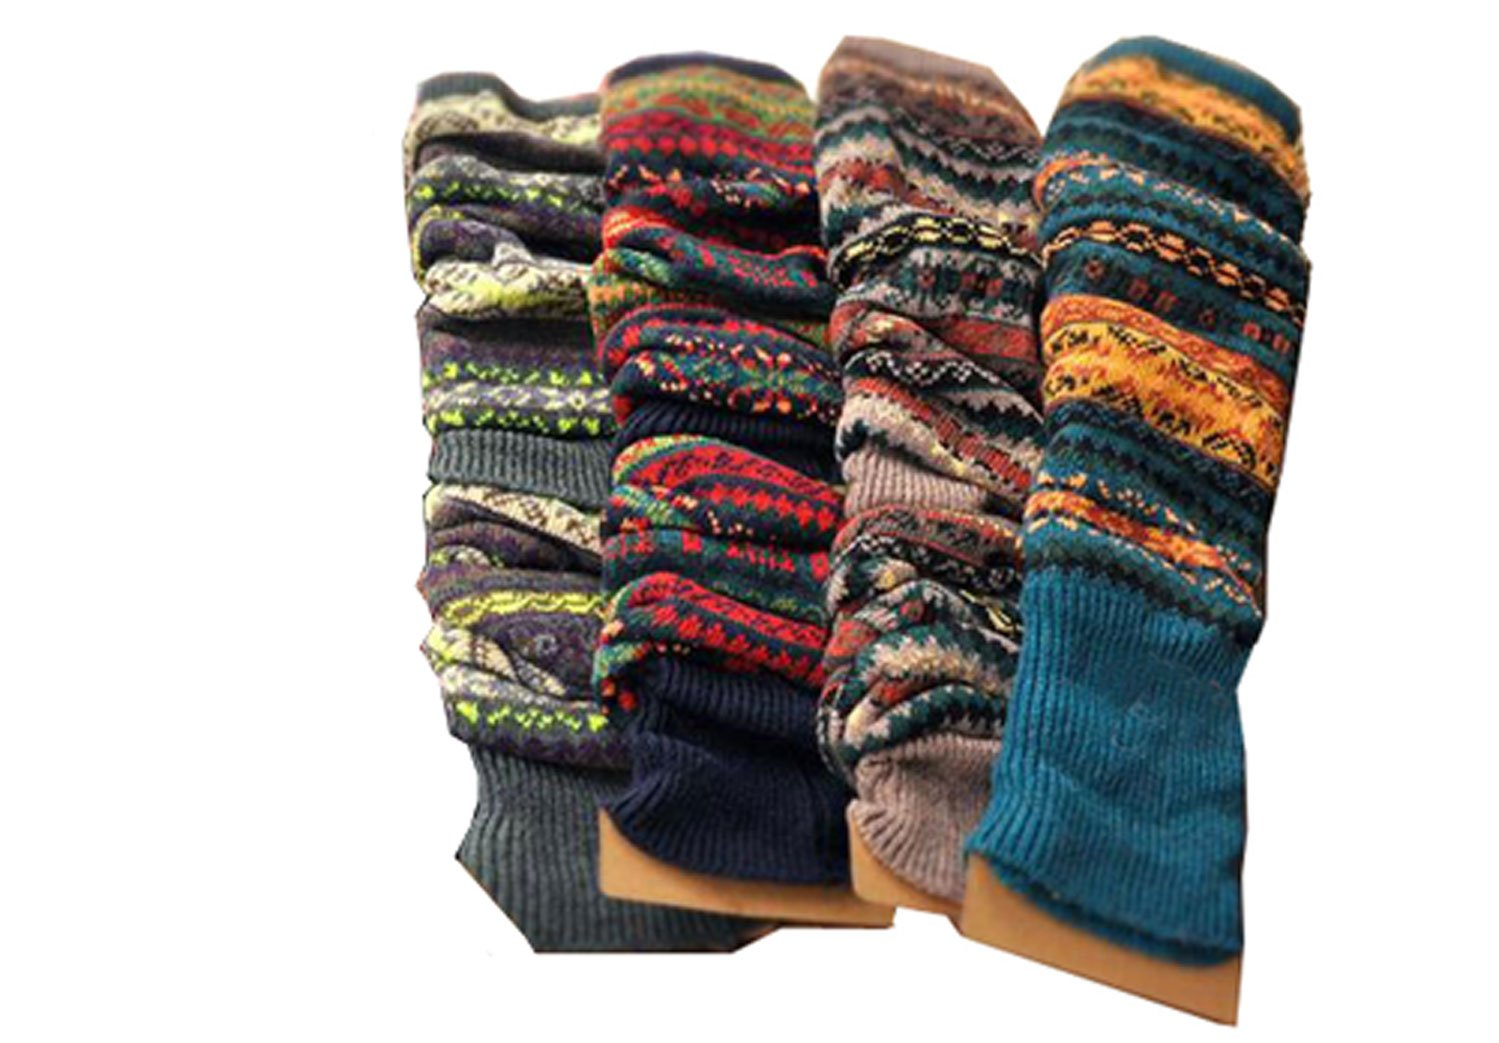 Luckystaryuan ® Cyber Monday Women Set of 3 Wool Knit Boot Leg Warmer o9cawatao